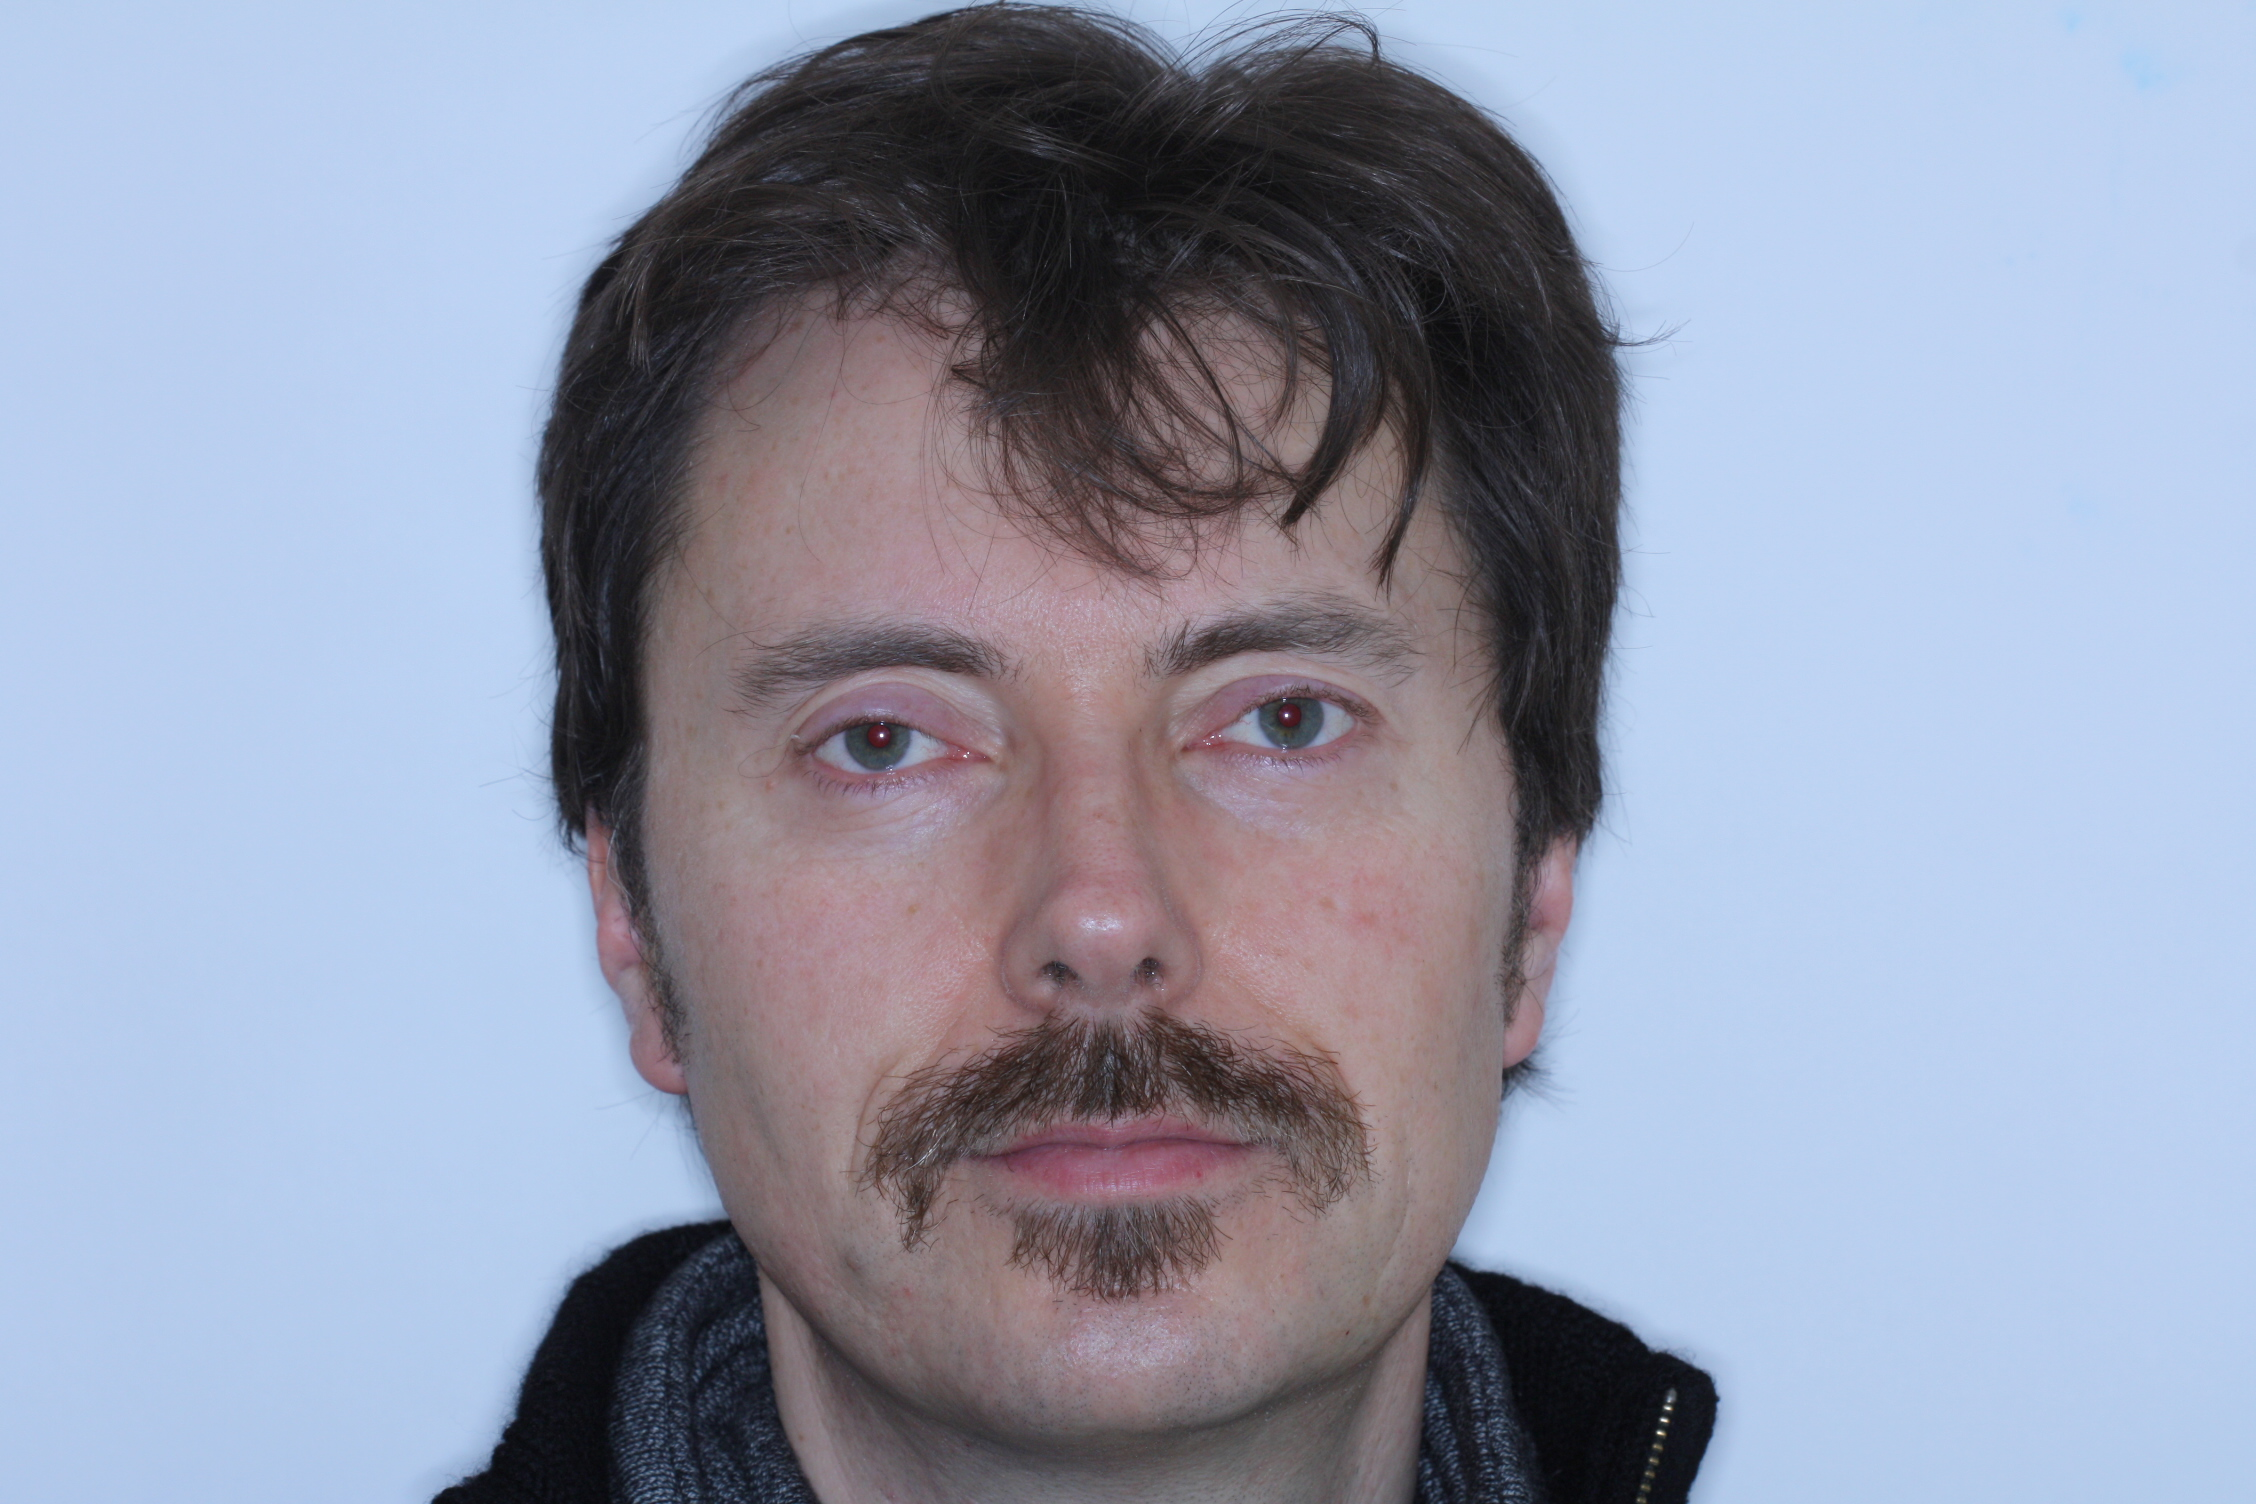 Dr Stephen Murray from Swords Orthodontics channels his inner Frank Zappa before finally removing the Movember evidence